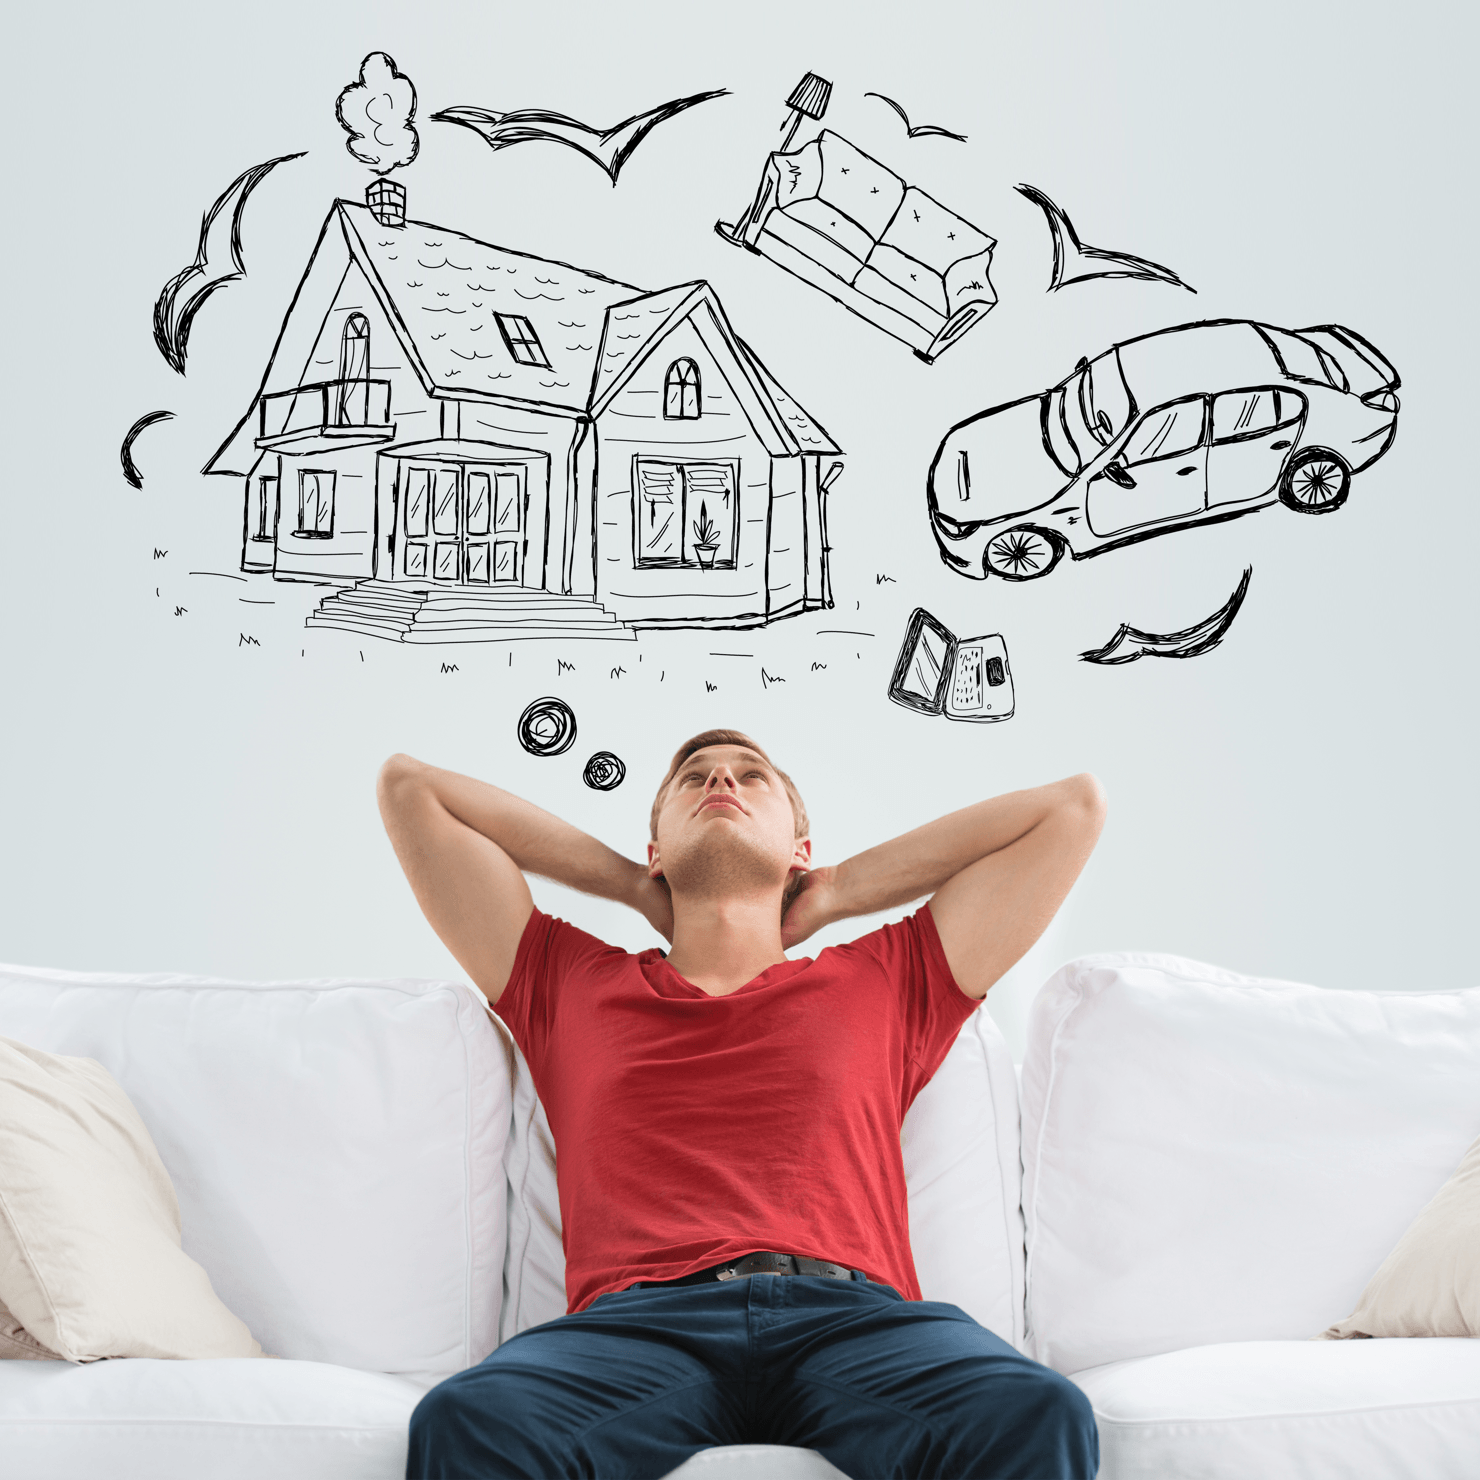 What is Really Needed for a Down Payment? Man Dreaming Image